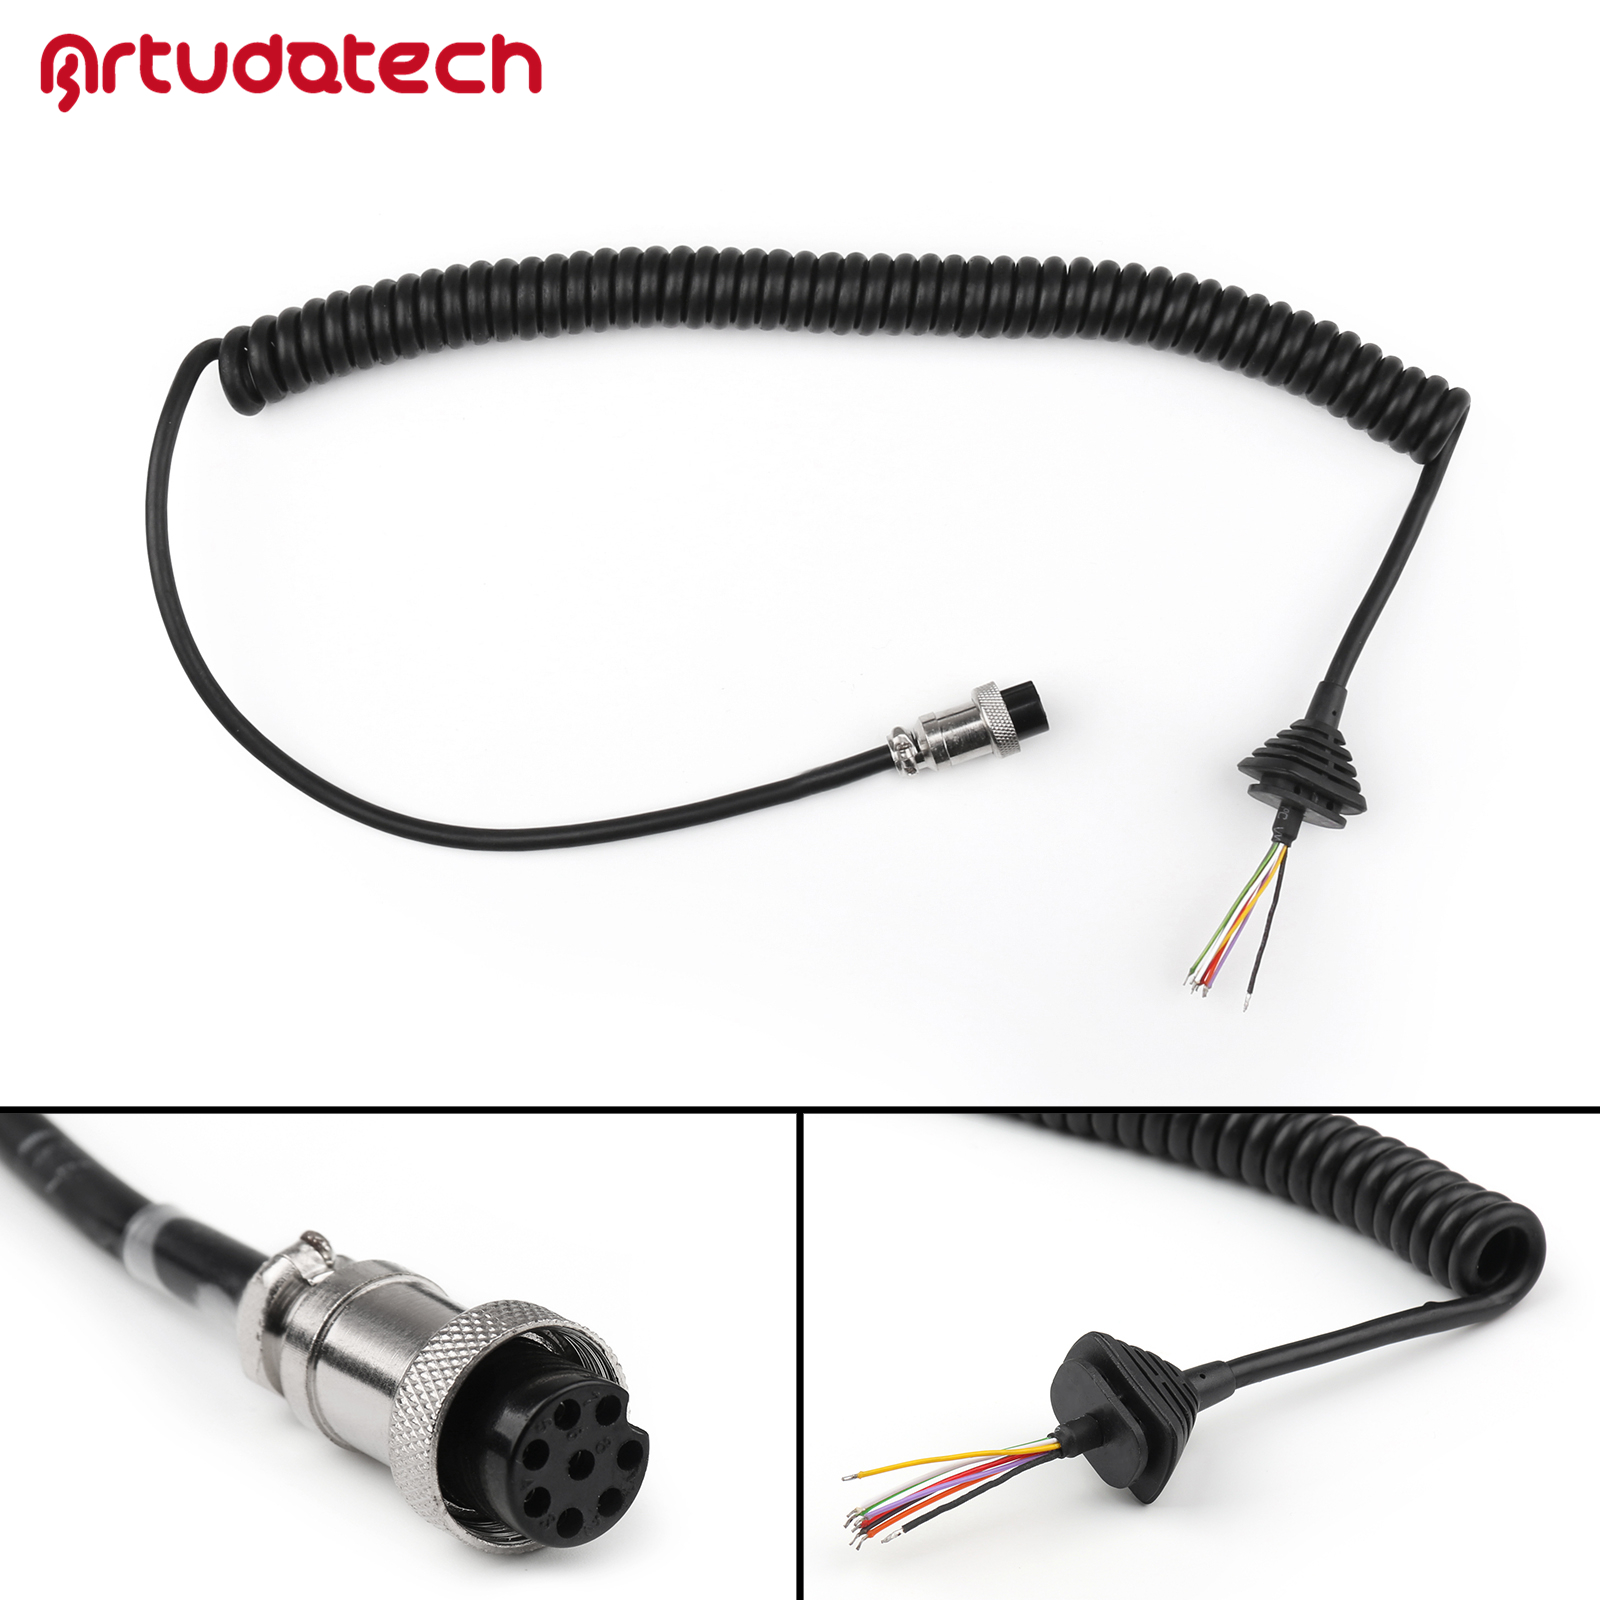 Artudatech EMS-53 EMS-57 Mic Cable Line For ALICON DR430 DR135 DR620 DR635 DR435 Handheld Microphone